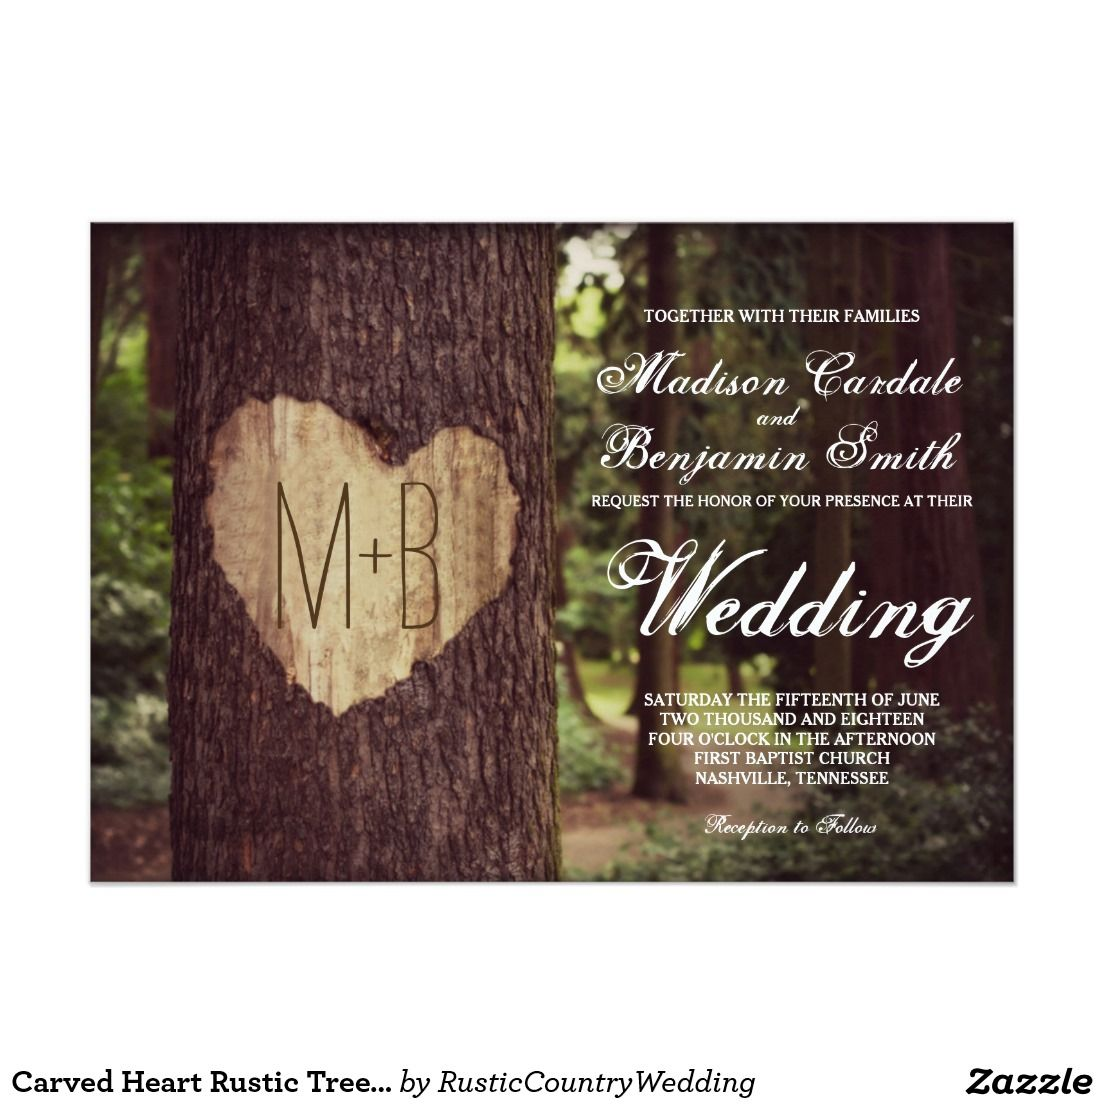 Carved Heart Rustic Country Tree Wedding Invitations with the bride and groom's initials carved into the tree.  #wedding